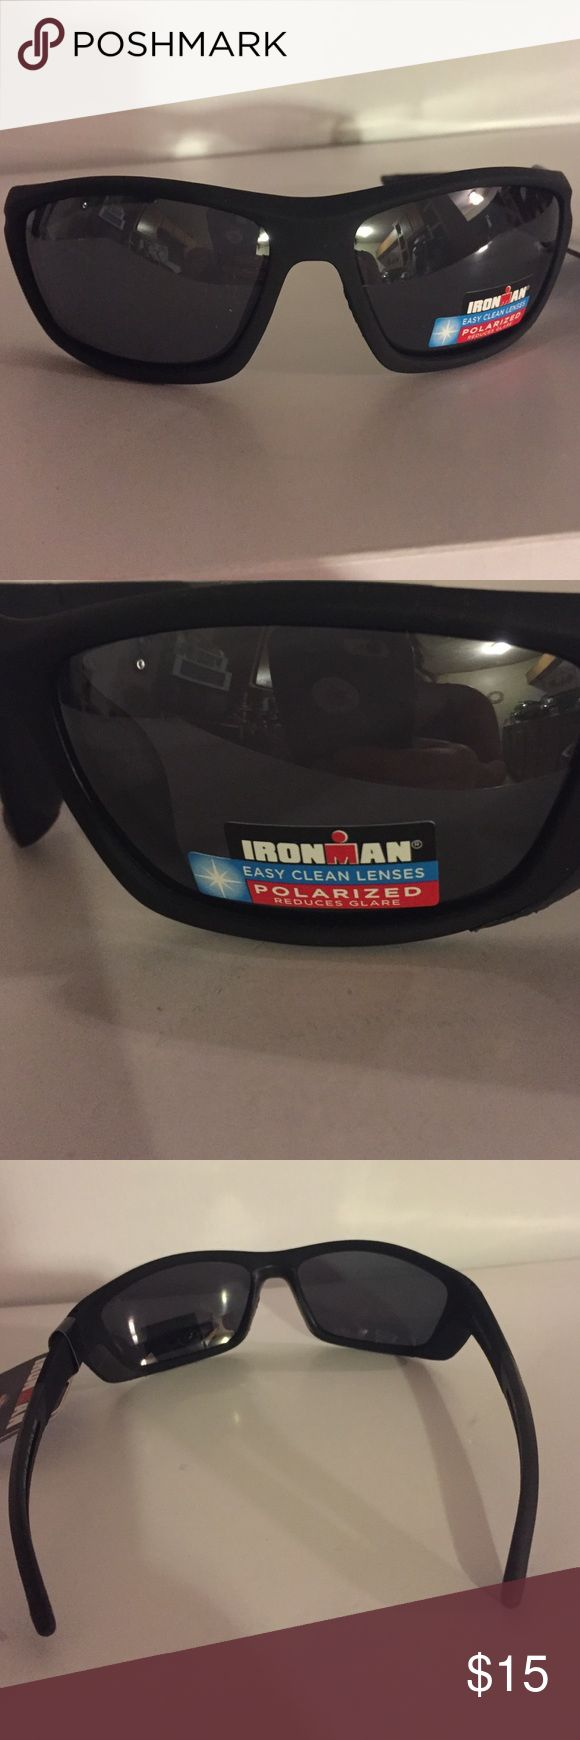 Foster Grant Ironman Sunglasses Ready for summer? You can be with these stylish yet functional sunglasses. MaxBlocks means you get 100% UVA/UVB protection from the sun. Polarized glare free vision. MSRP $25 Foster Grant Accessories Sunglasses